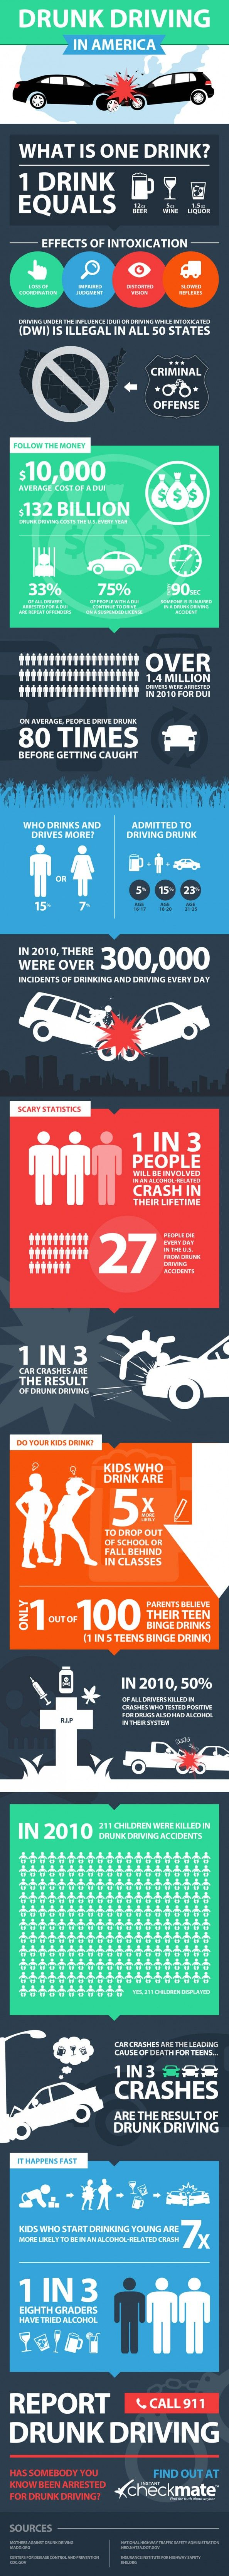 Drunk Driving in America Infographic  We need to put an end to drunk driving! I know way too many people who have been impact themselves or know someone who has been impacted by a drunk driver!